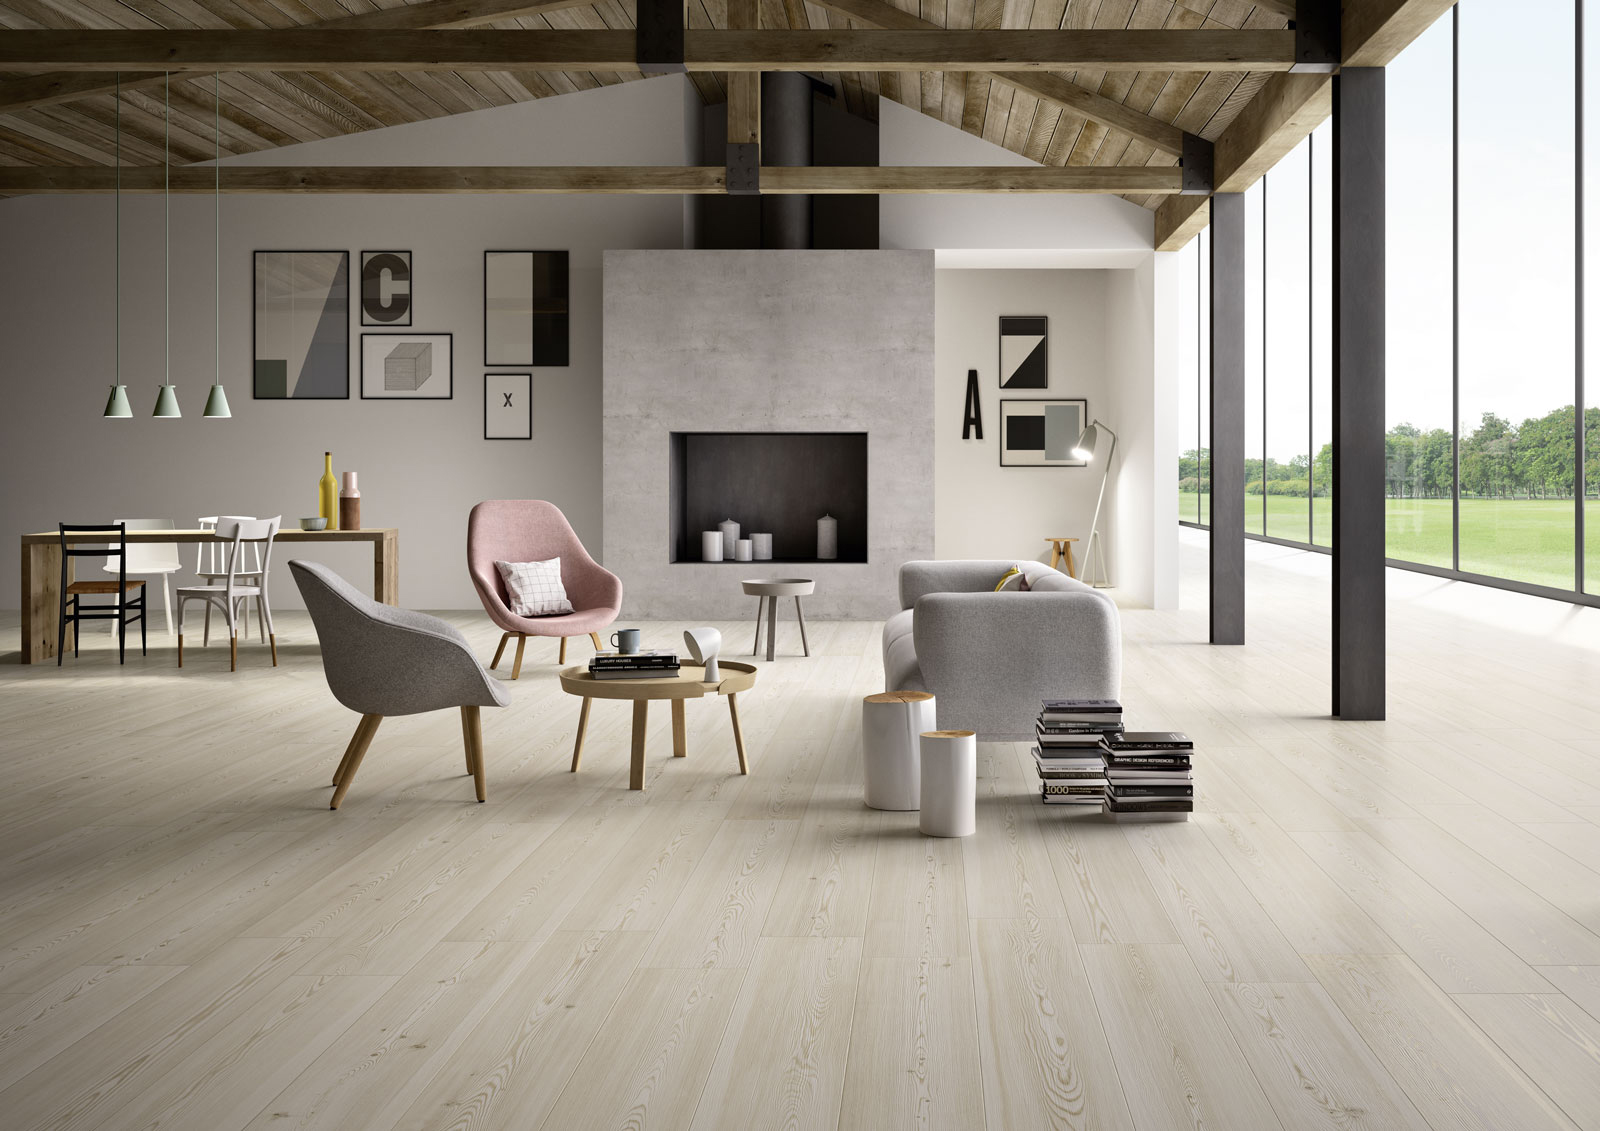 Carrelage salon inspiration d co marazzi Carrelage salon